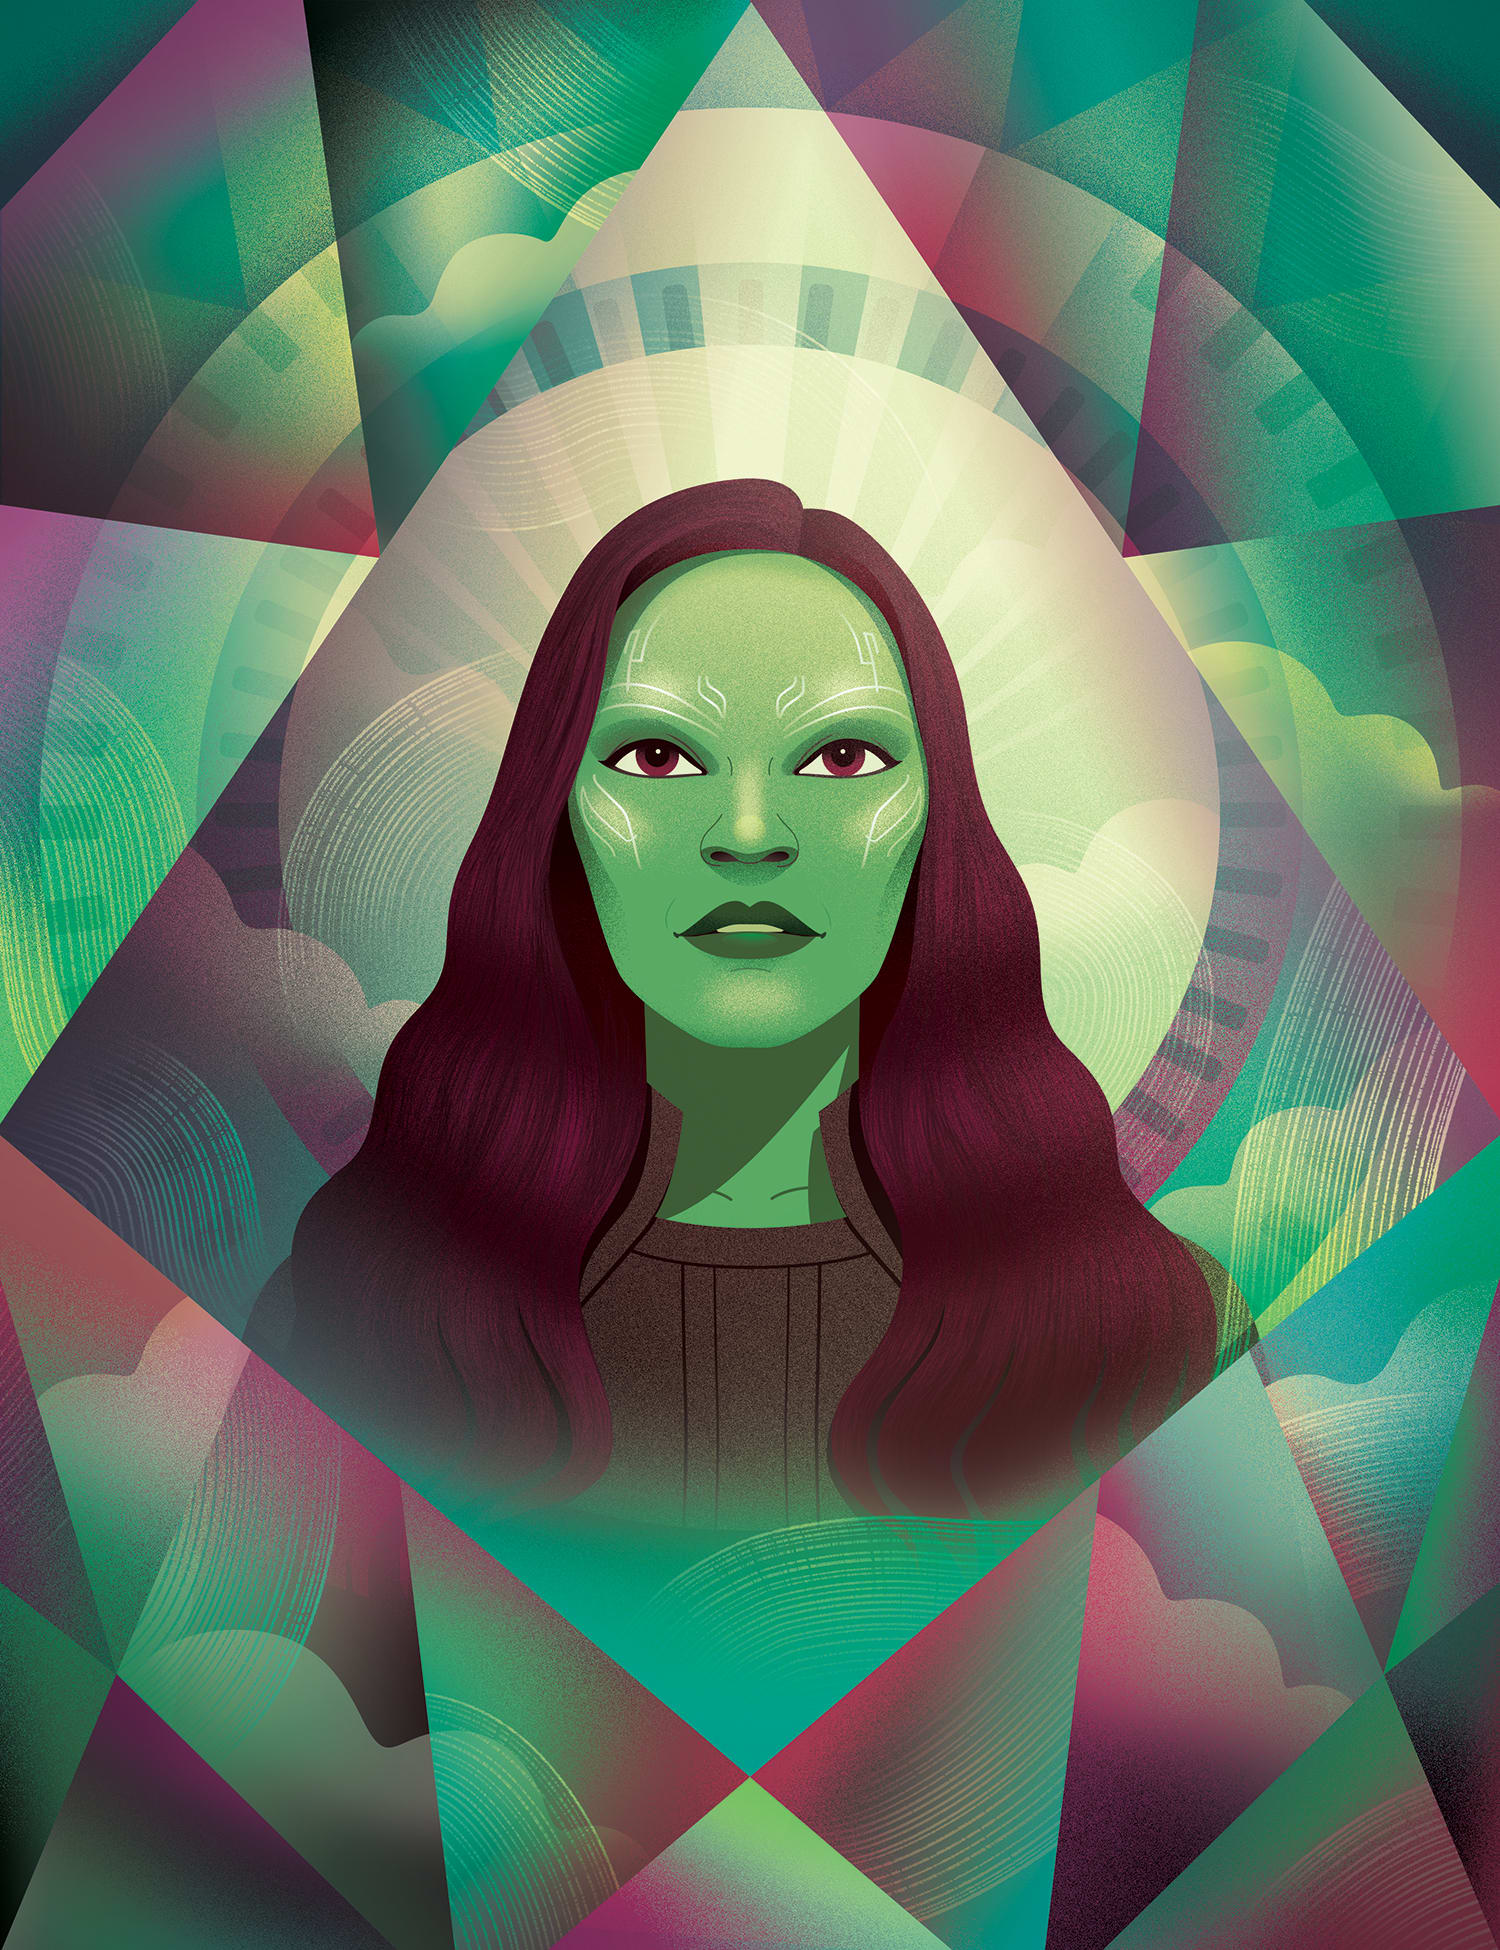 Gamora for the Avengers issue of 'Birth. Movies. Death' magazine